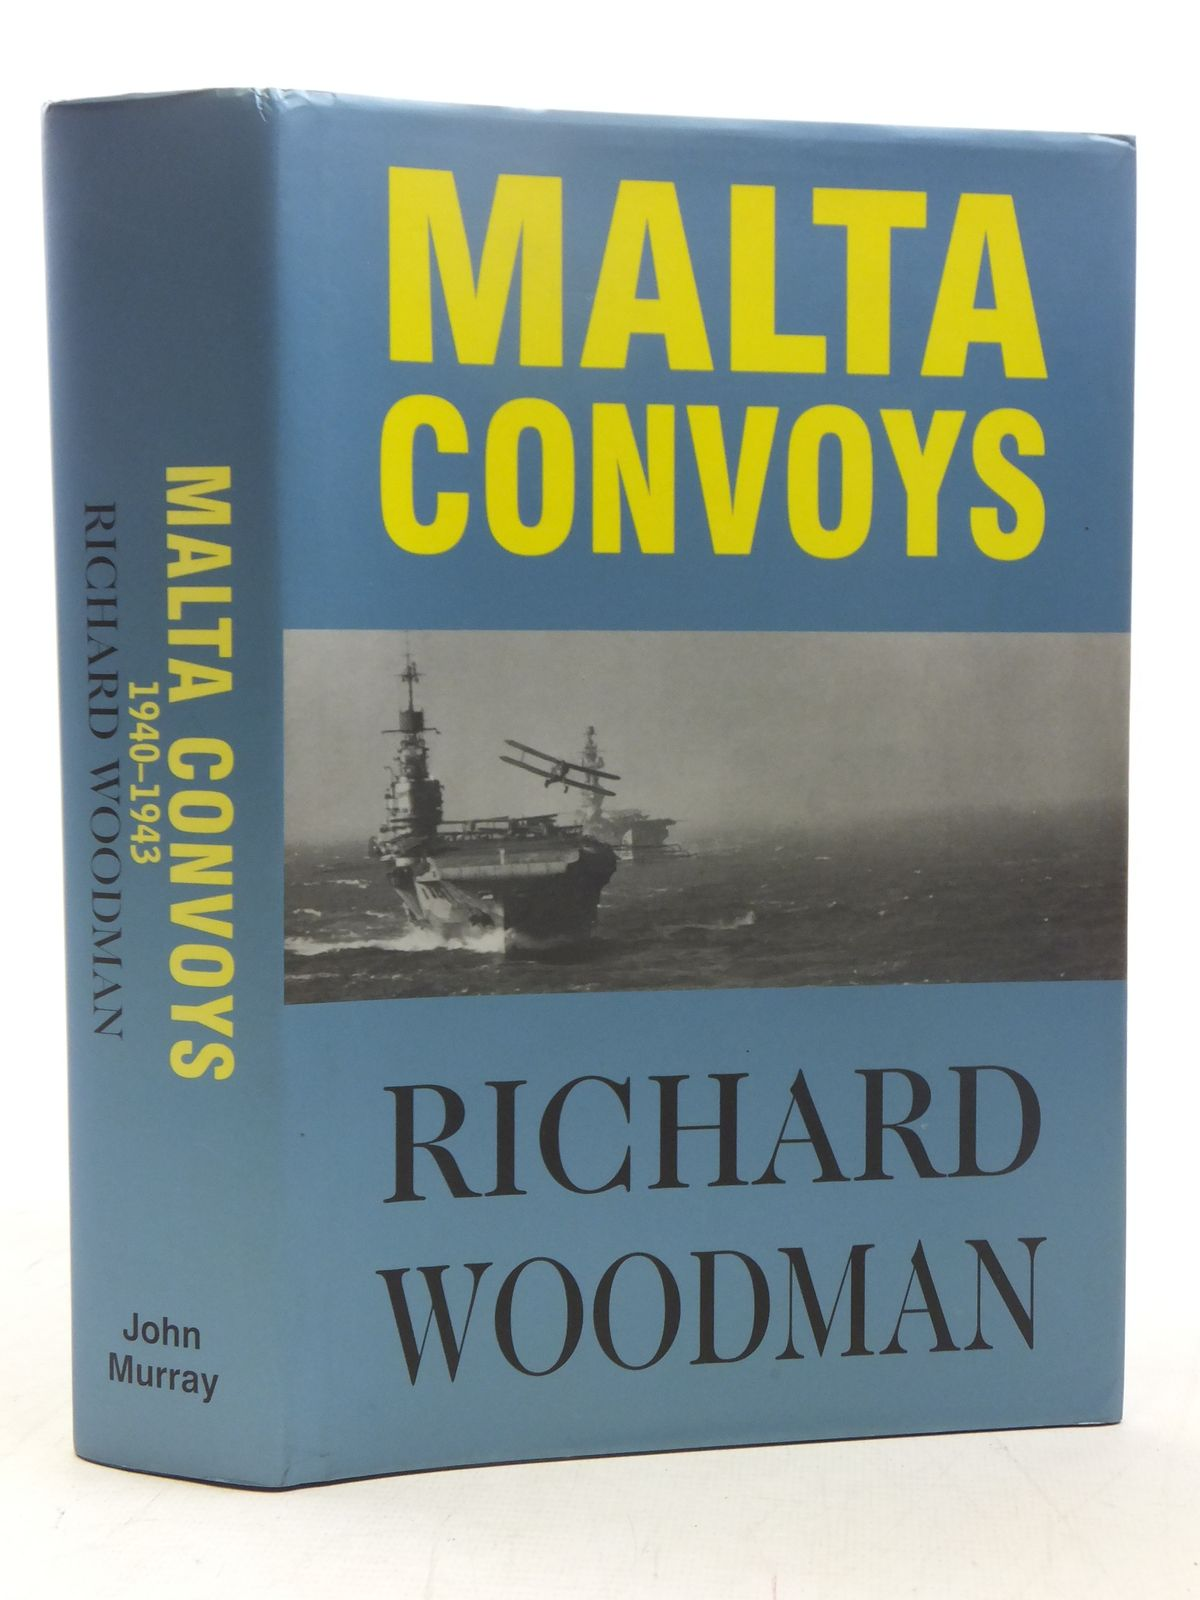 Photo of MALTA CONVOYS 1940-1943 written by Woodman, Richard published by John Murray (publishers) Ltd. (STOCK CODE: 1607395)  for sale by Stella & Rose's Books